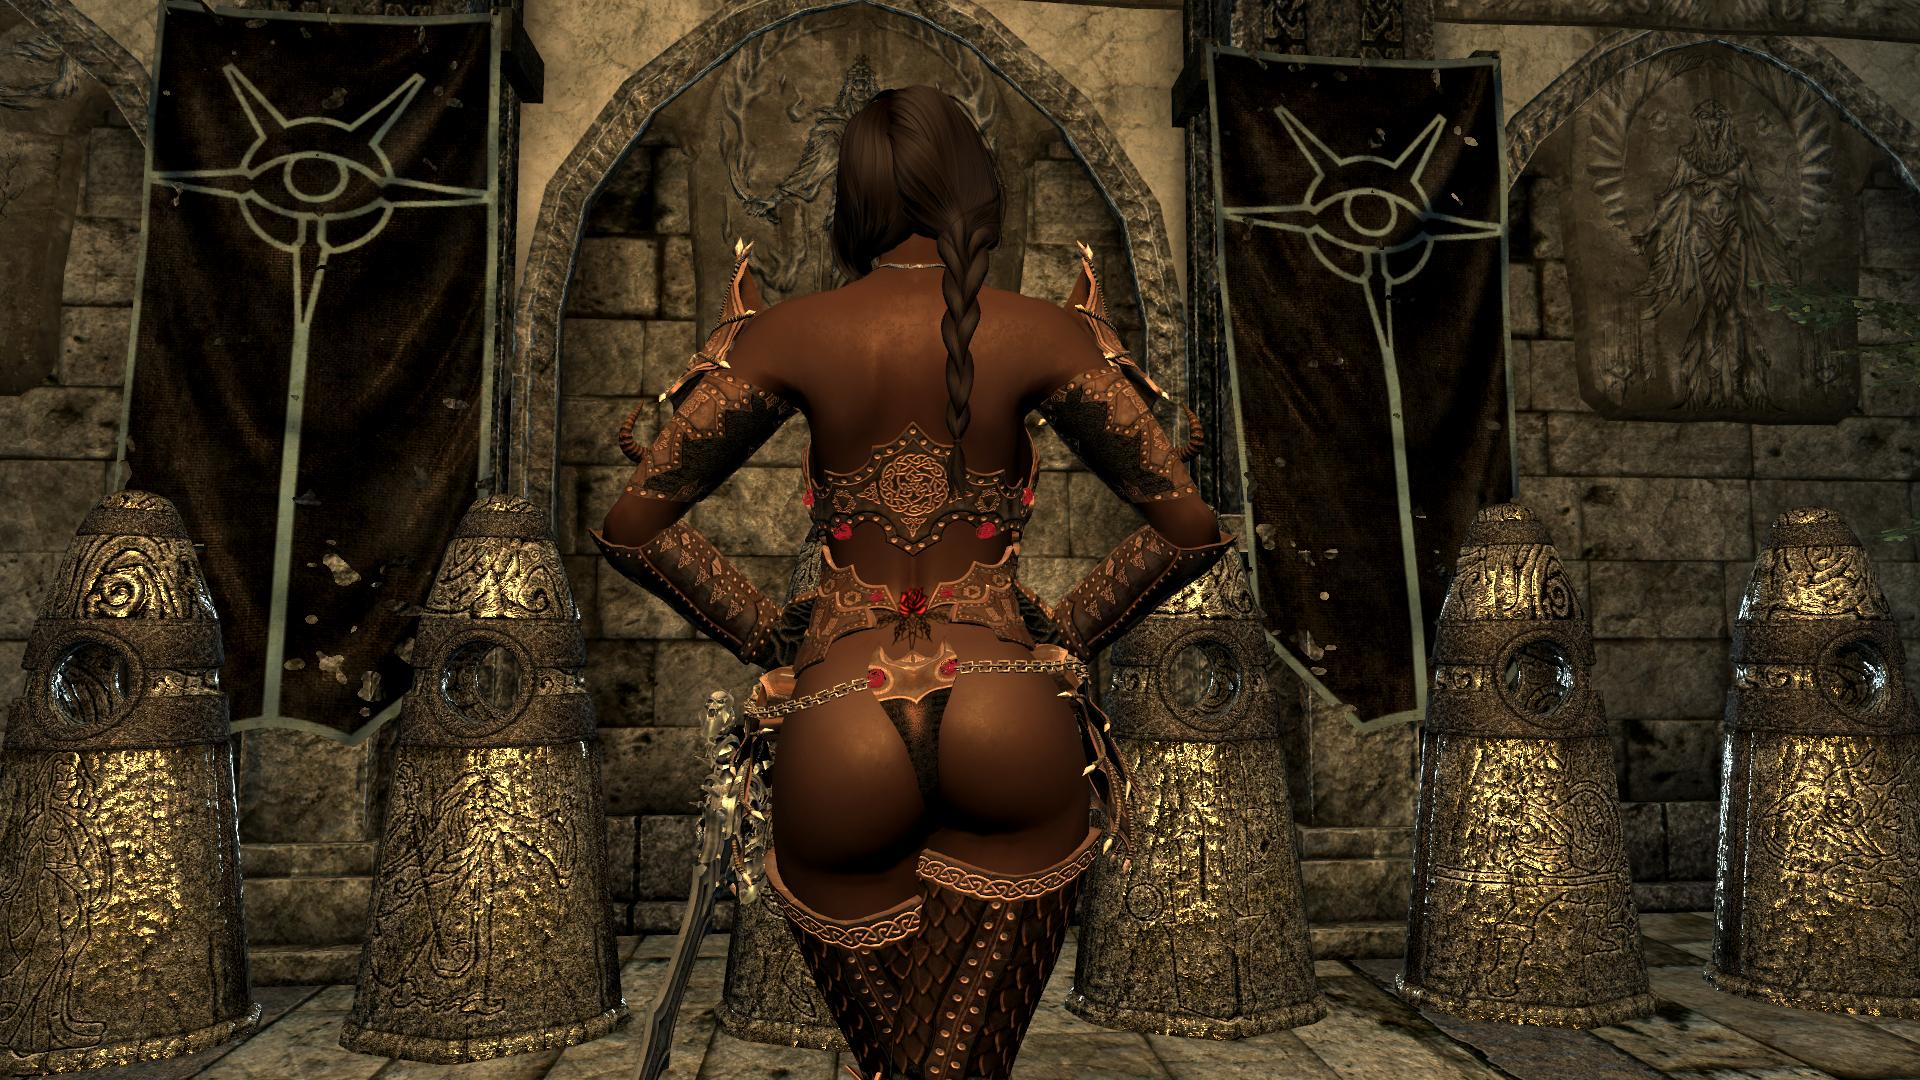 Vampire knights naked adult images